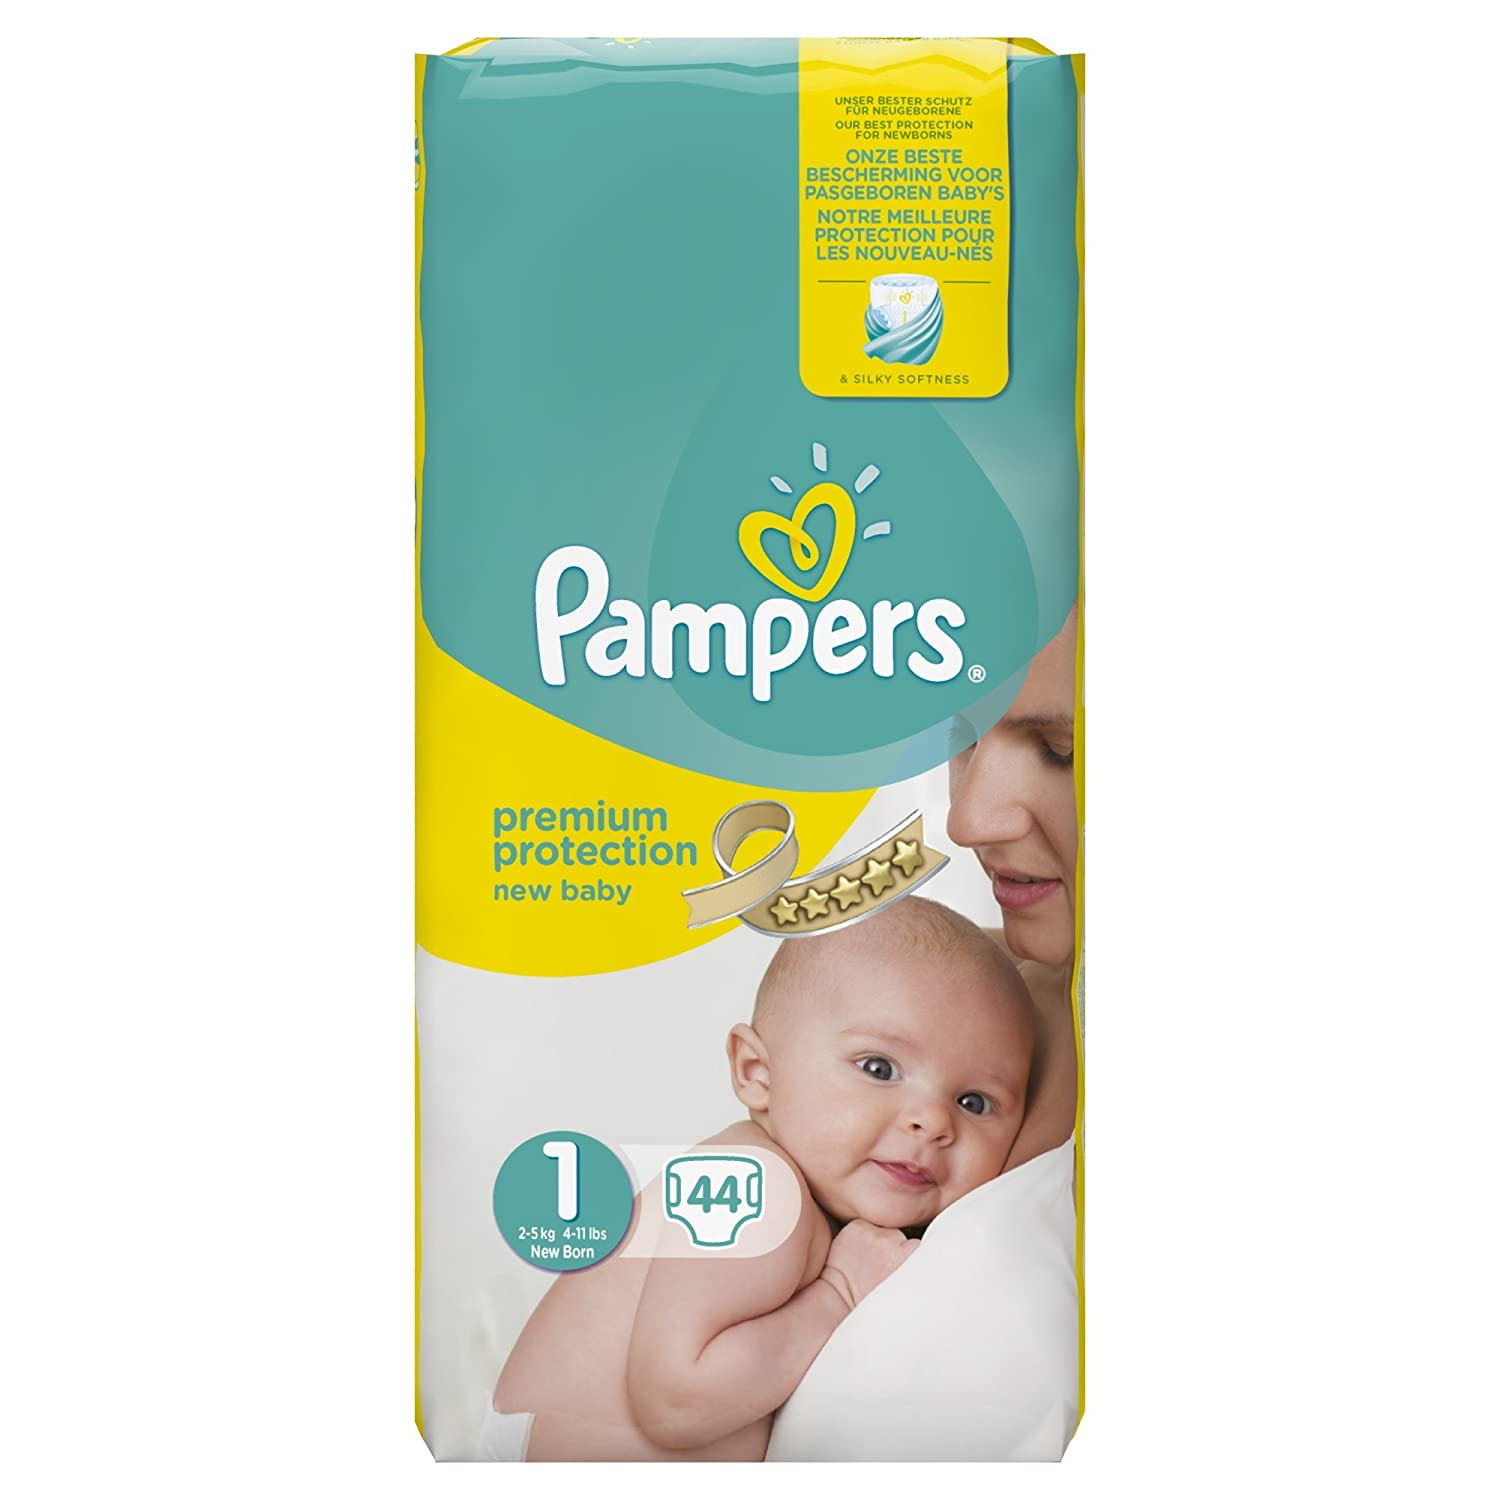 pampers couches taille 1 2 5 kg nouveau n pack g ant lot 44 x 2 x88 couch ebay. Black Bedroom Furniture Sets. Home Design Ideas